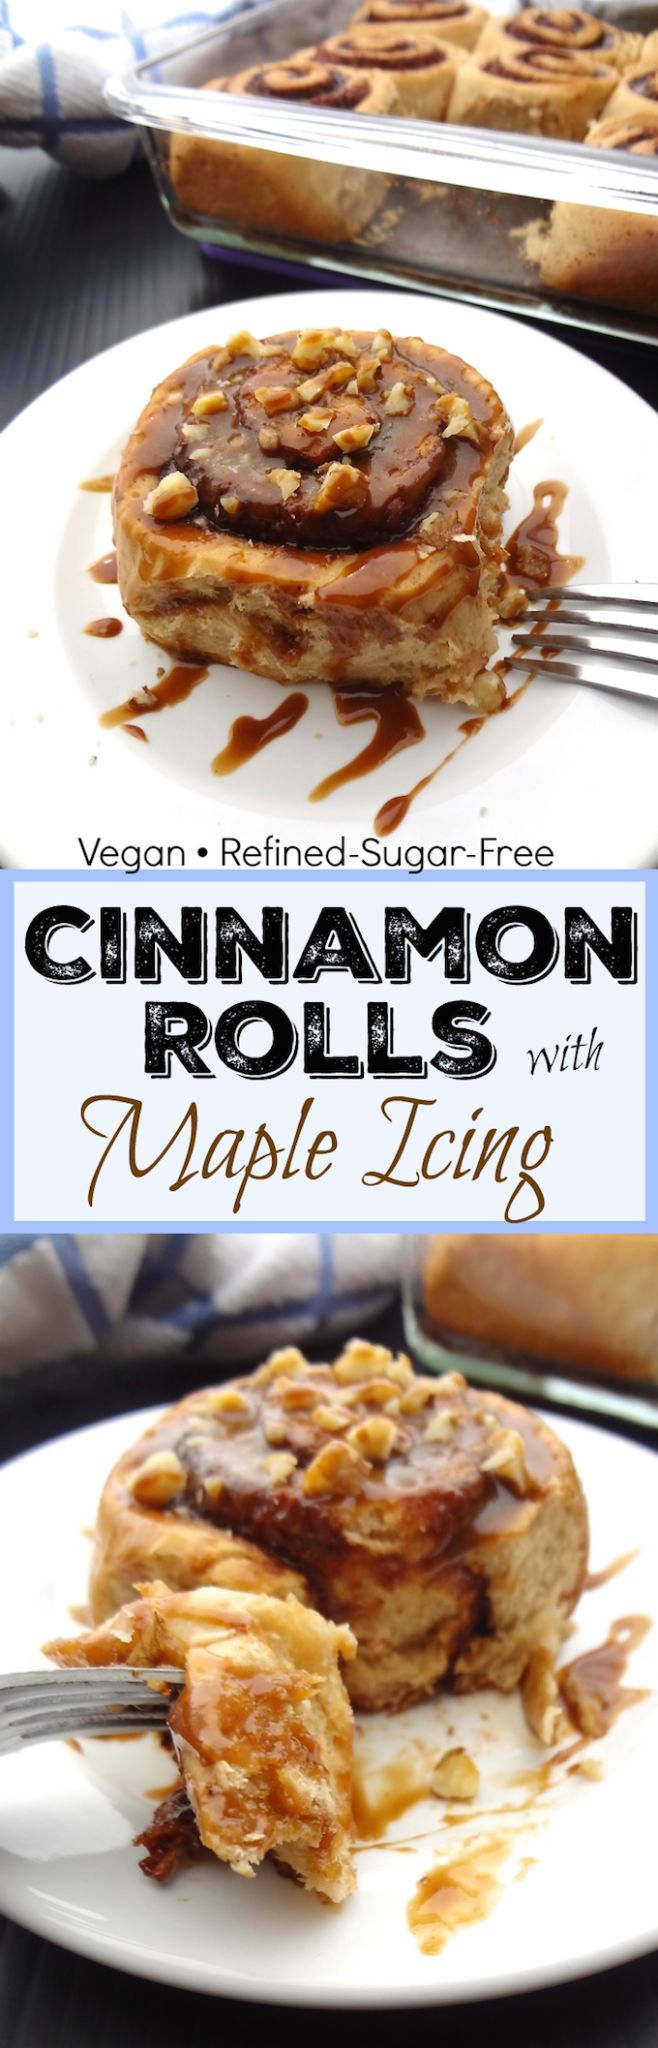 You'll love these vegan cinnamon rolls with maple icing!  They're super soft, fluffy and free of refined sugar, dairy and eggs! Enjoy these sweet, decadent, ready in about an hour, homemade cinnamon rolls for breakfast this weekend!